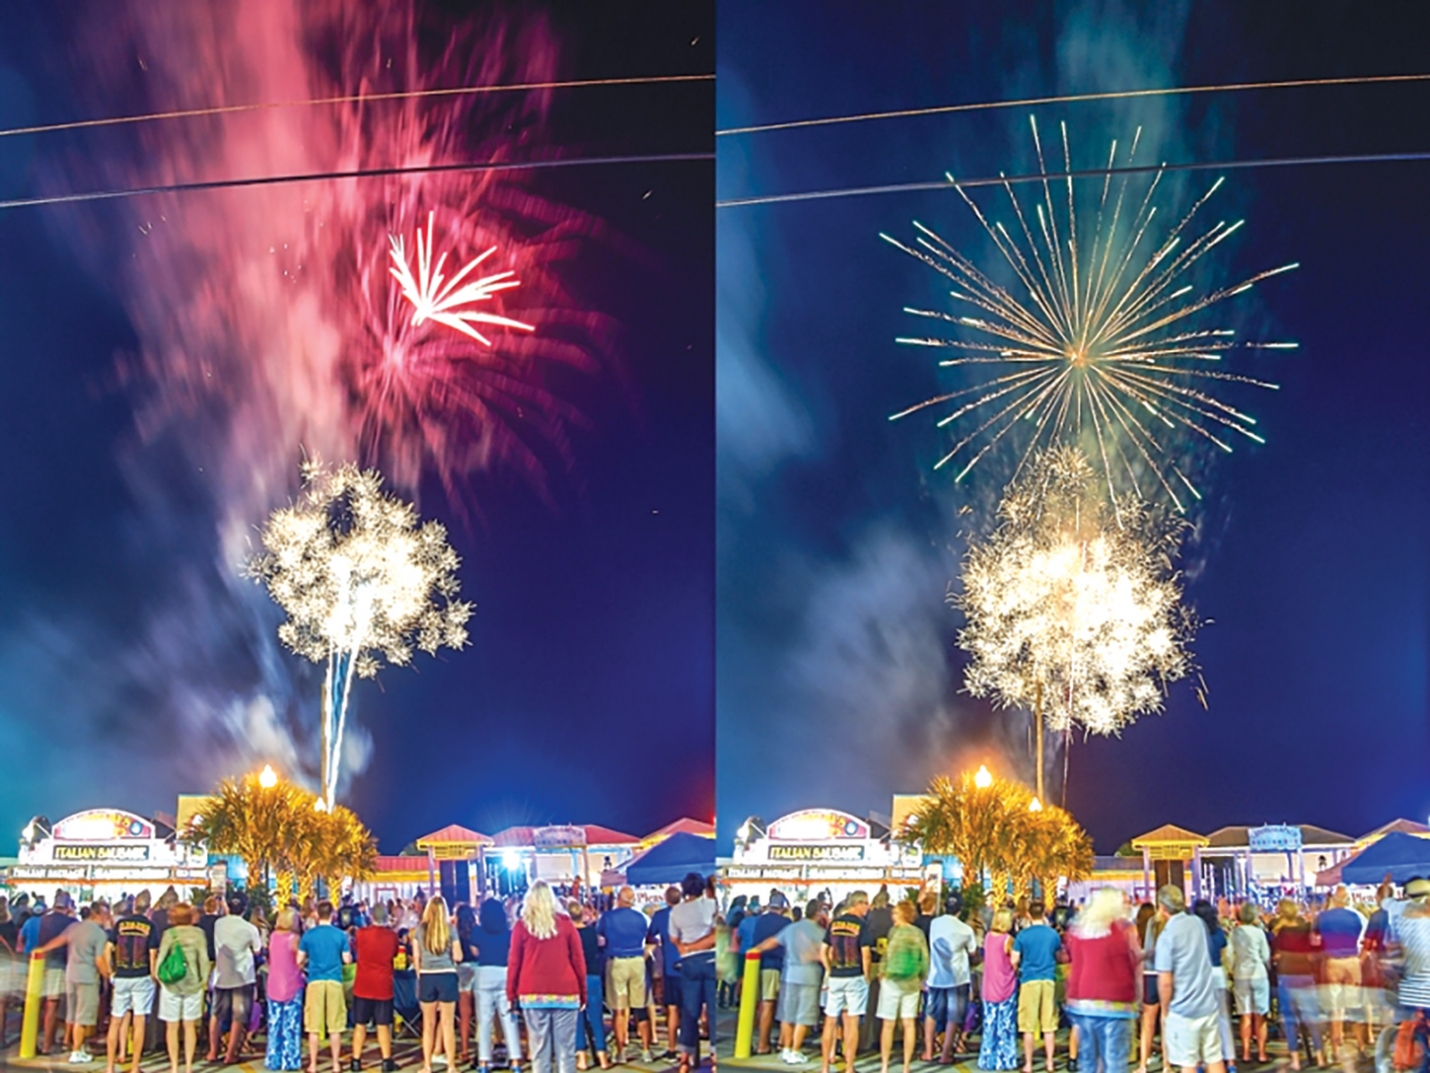 State Fire Marshal Urges Residents To Attend Public Fireworks Shows